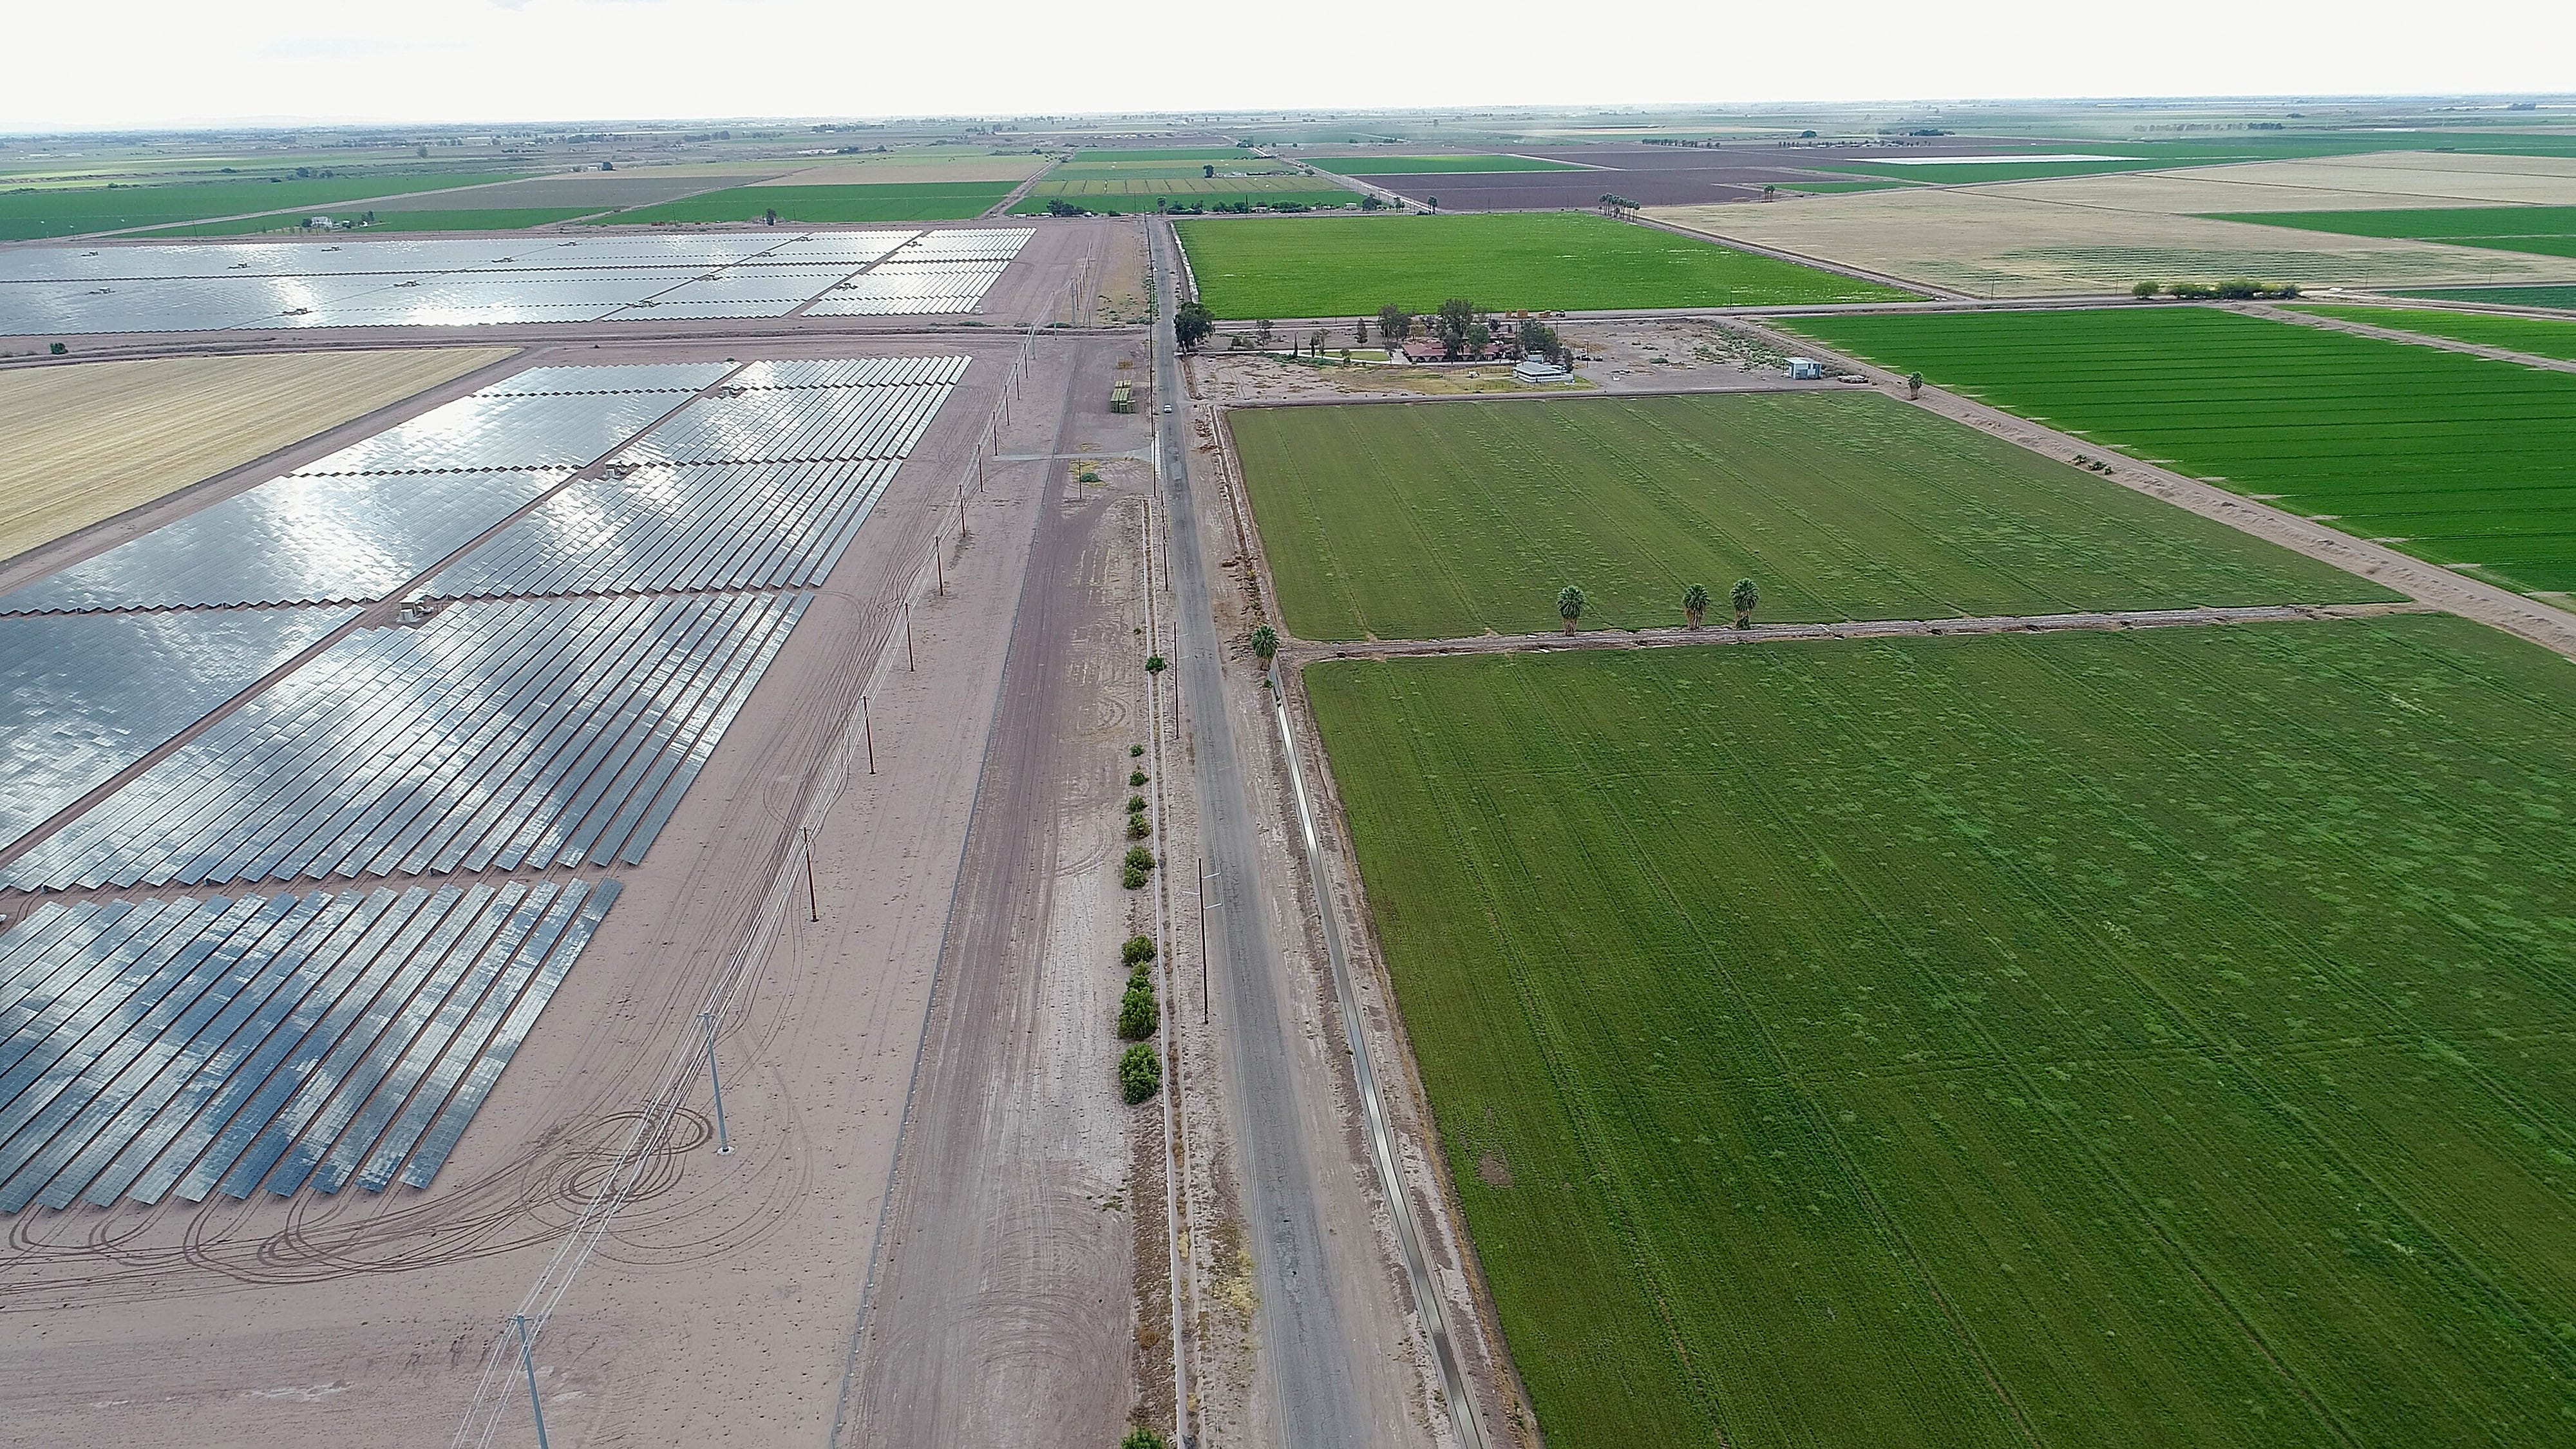 The Campo Verde solar project, seen from a drone, is adjacent to farmland owned by Mike Abatti. Abatti has plans to convert this farmland into the Vega SES solar project.